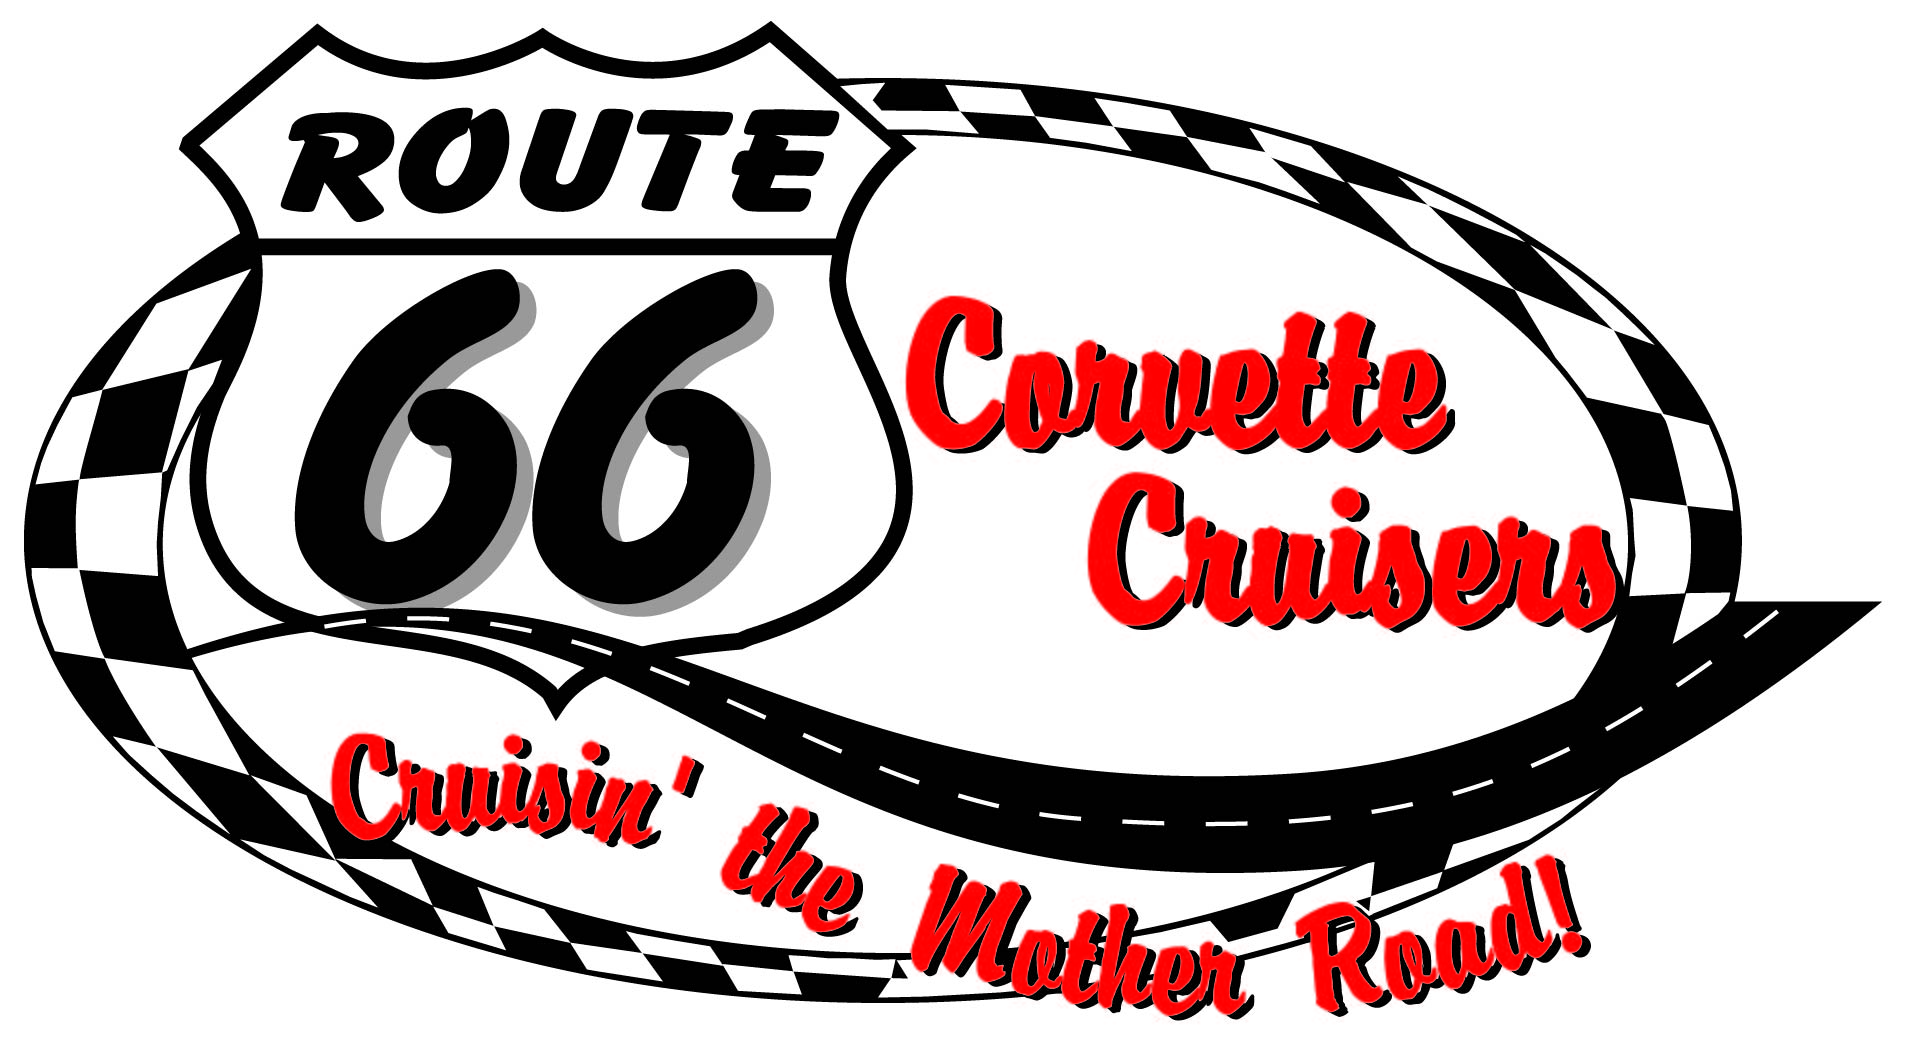 Route 66 Corvette Cruisers